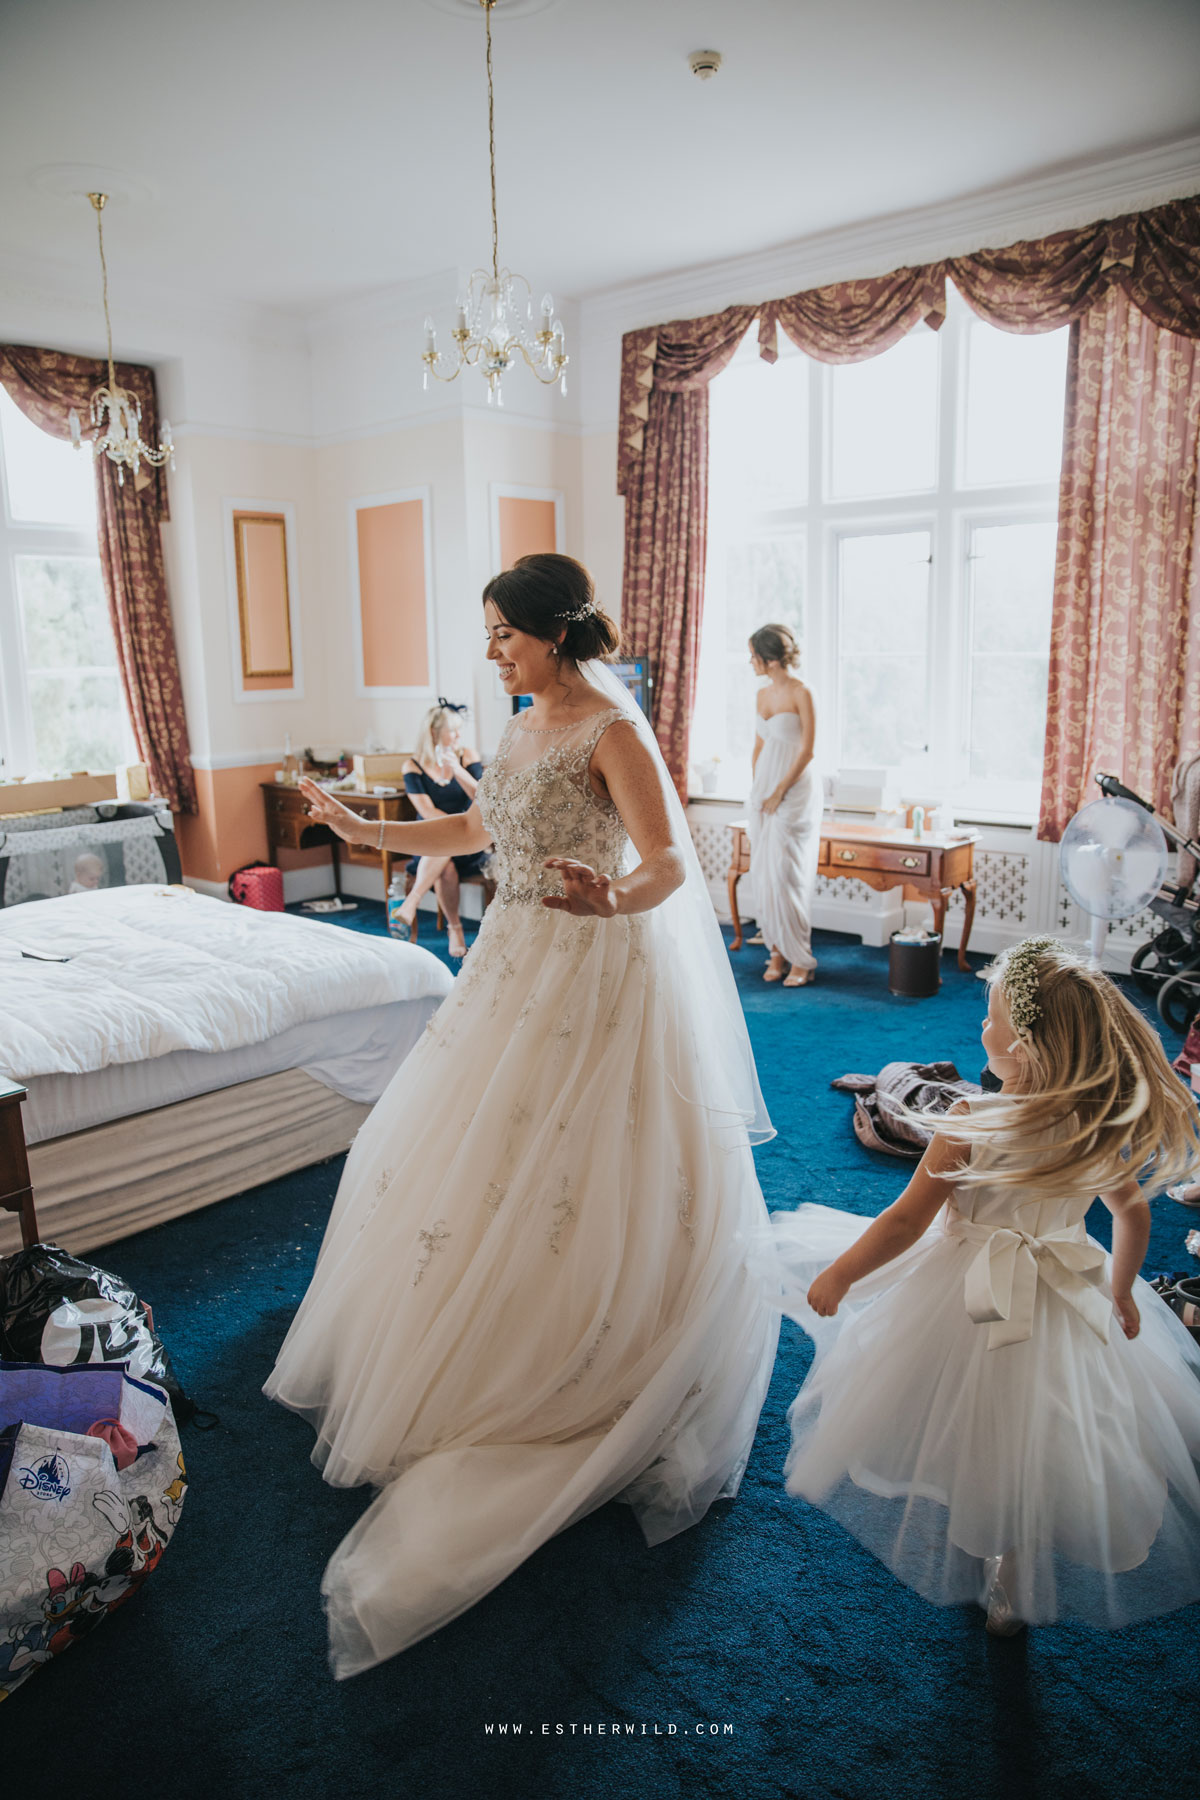 Lynford_Hall_Wedding_Thetford_Mundford_Esther_Wild_Photographer_IMG_1052.jpg